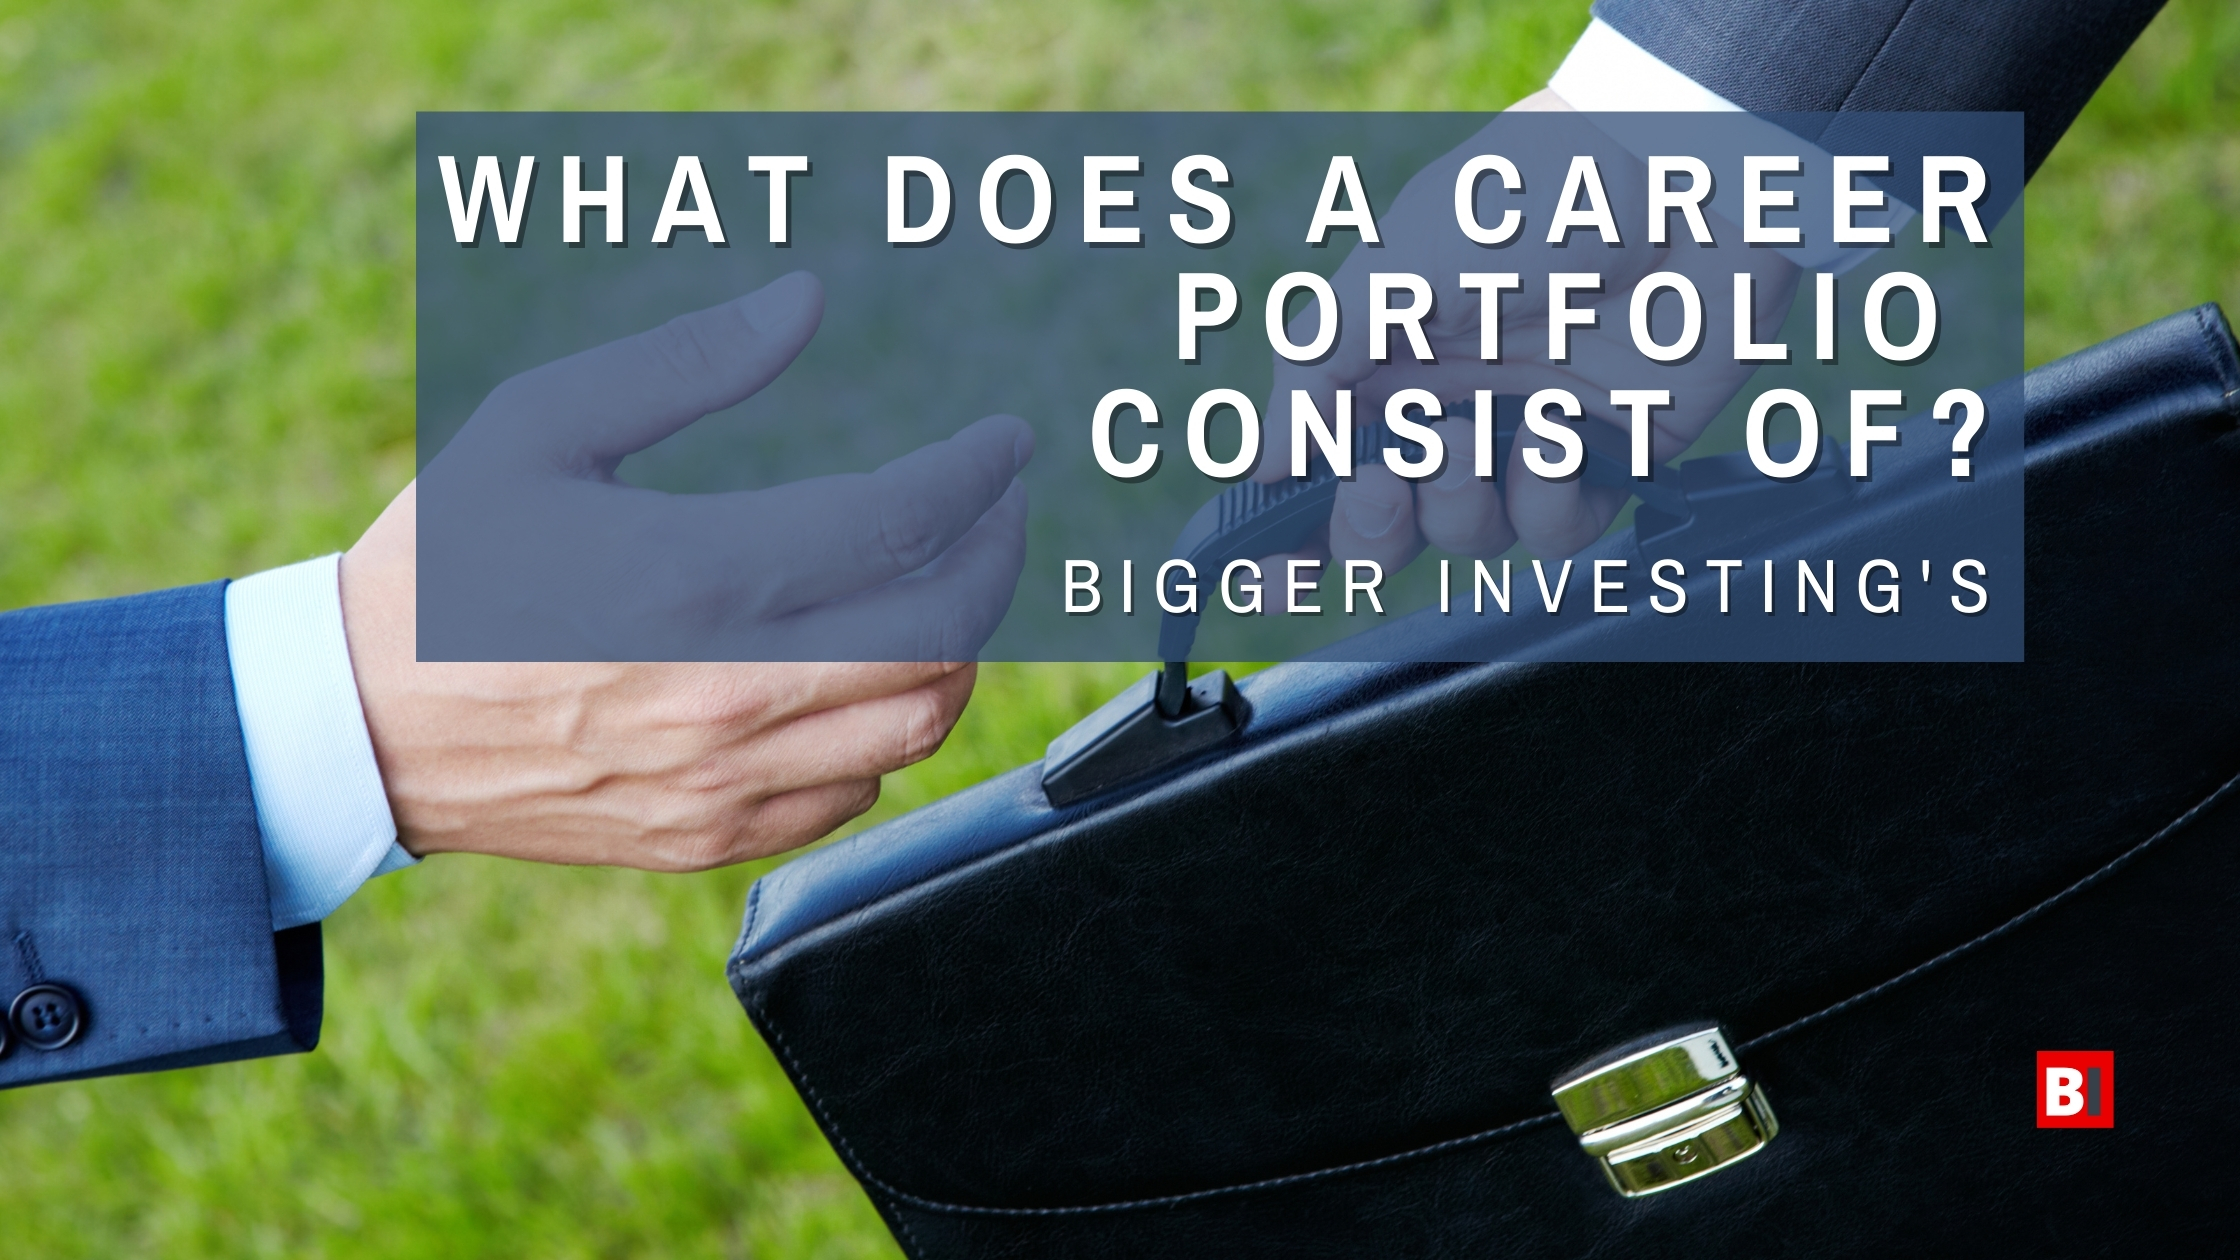 What Does a Career Portfolio Consist of?